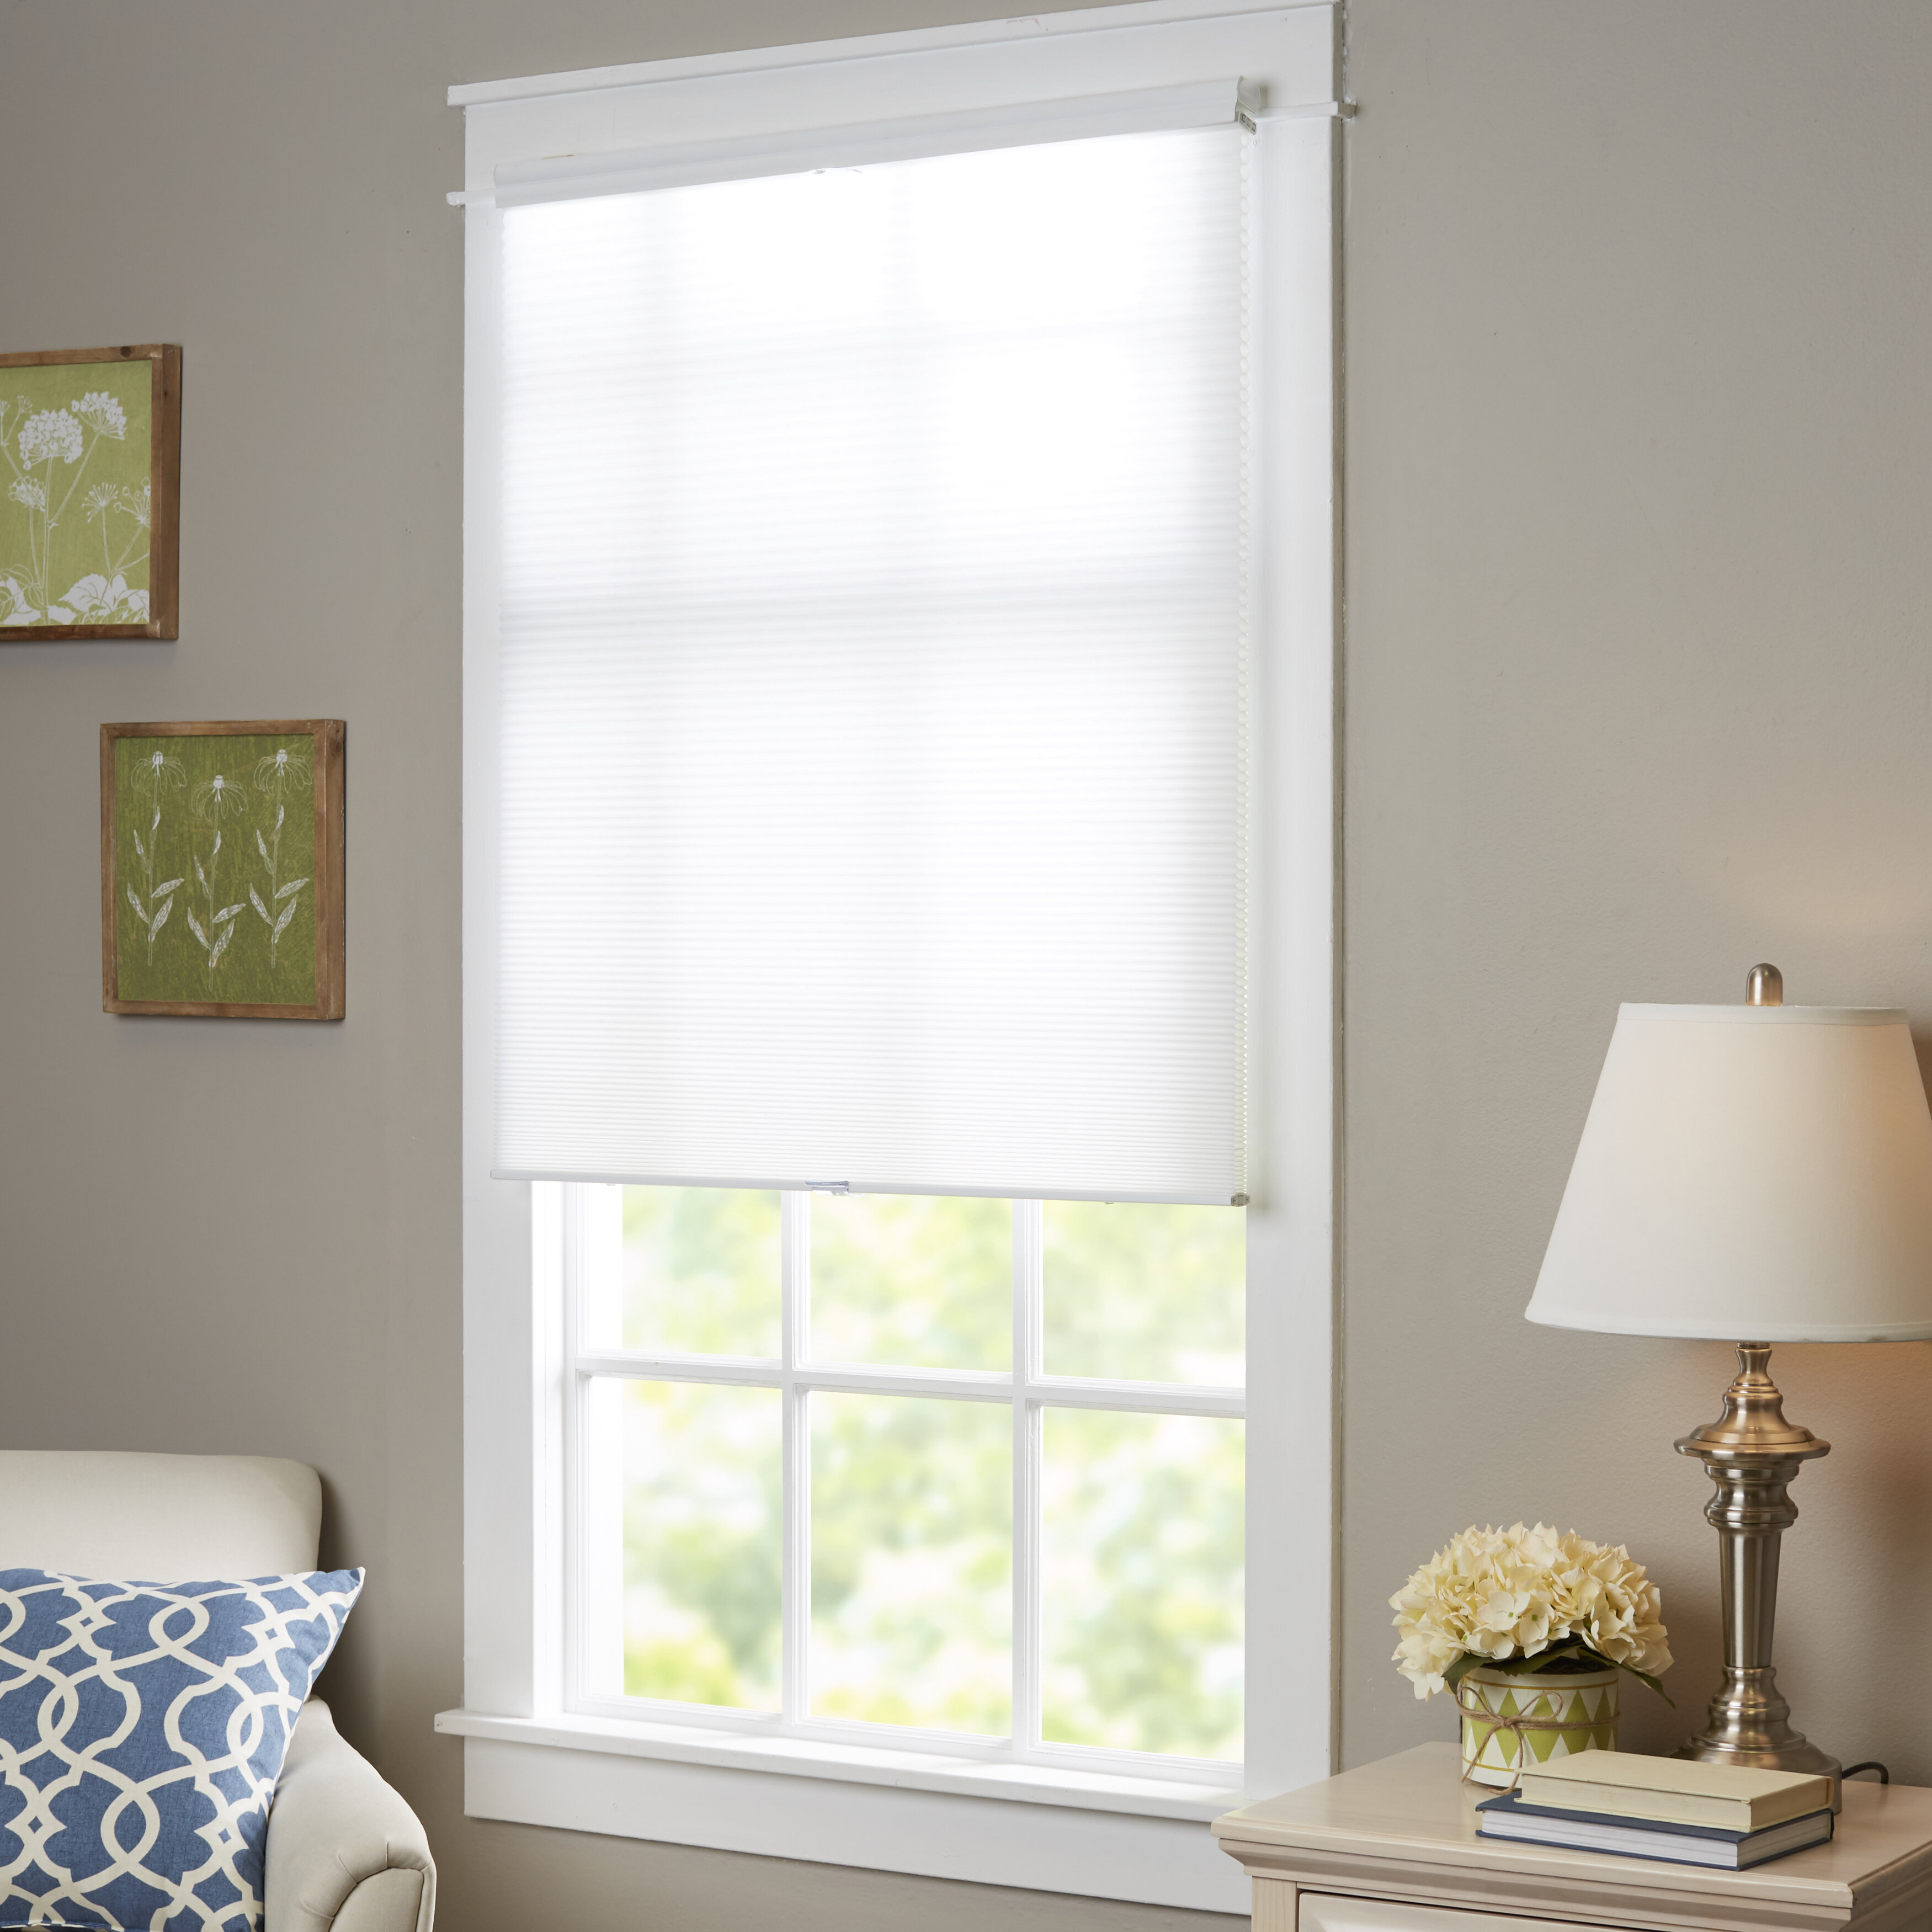 Wayfair Basics Top Down Bottom Up Cordless Honeycomb Cellular Shade Reviews Ca